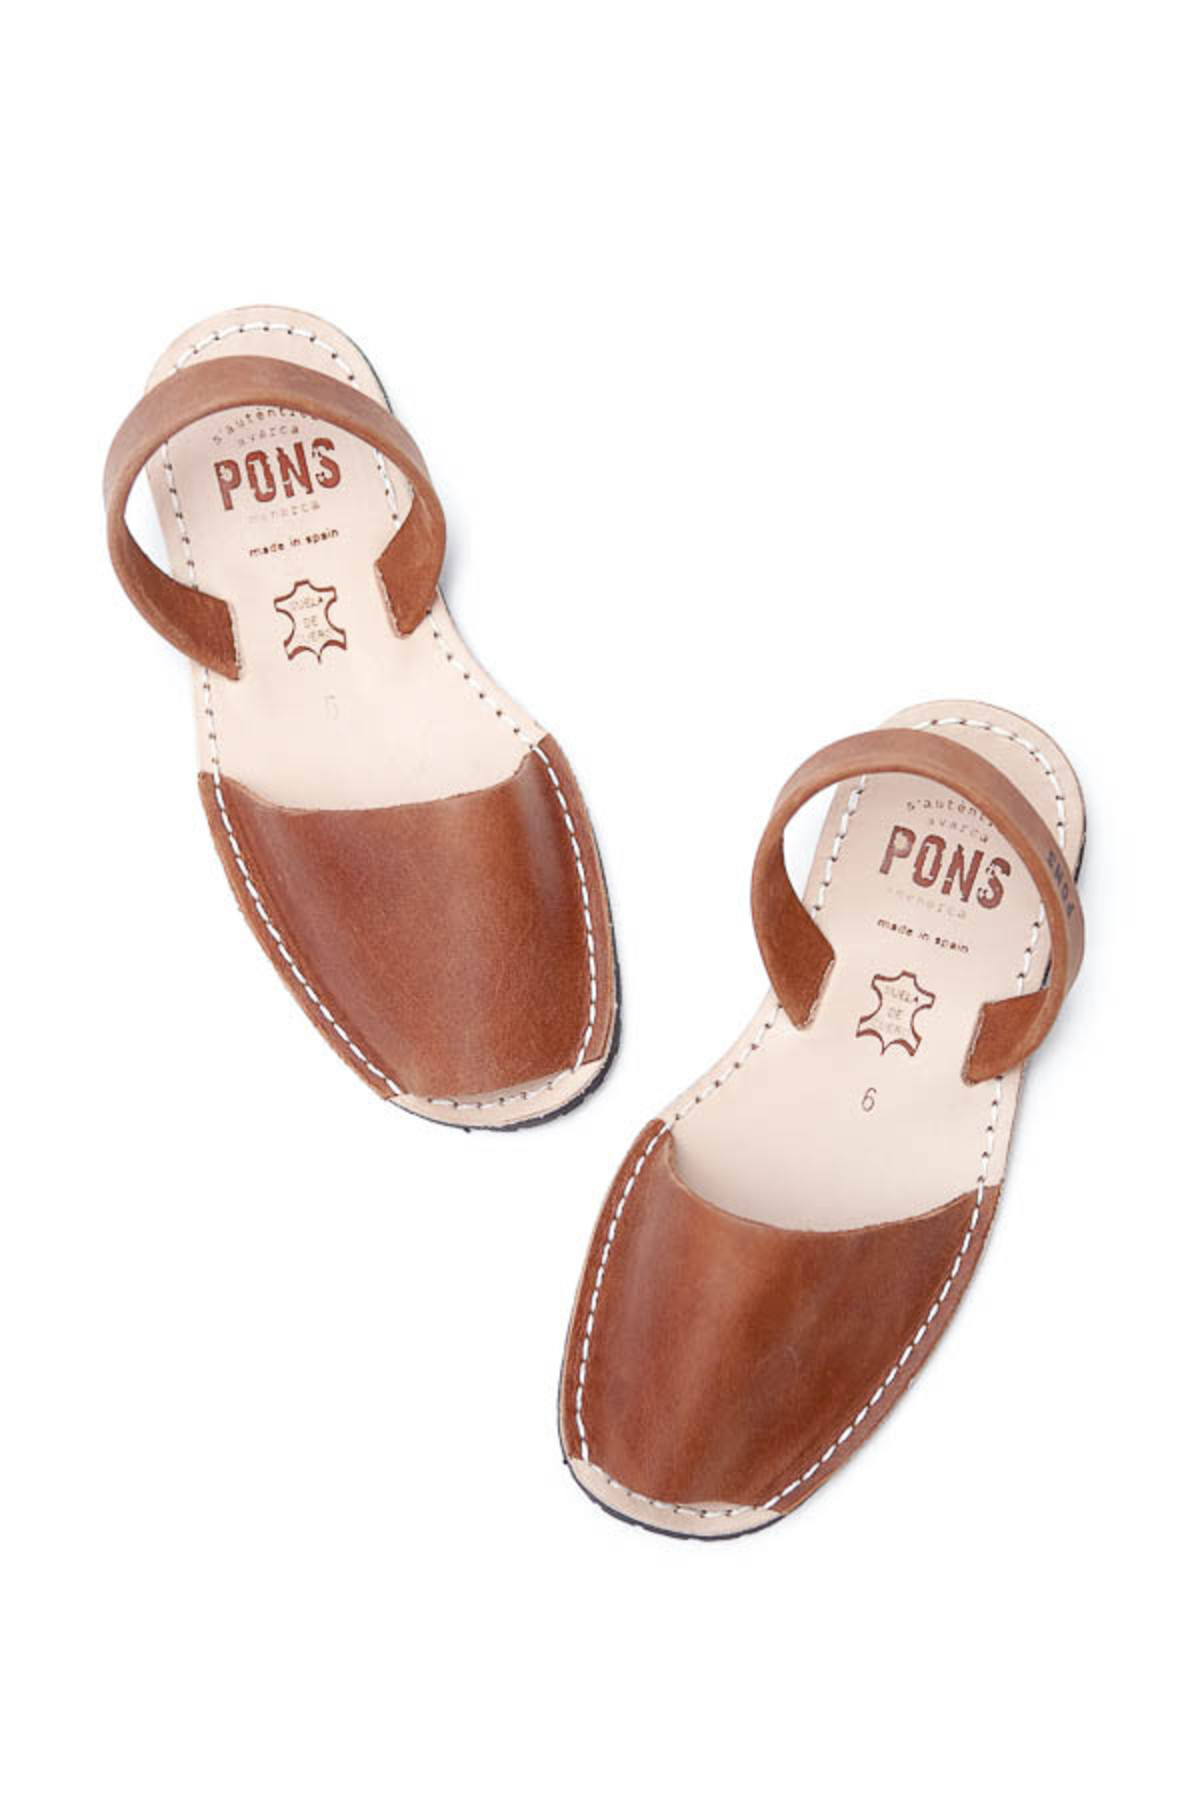 Pons Avarcas Sandals from PARC